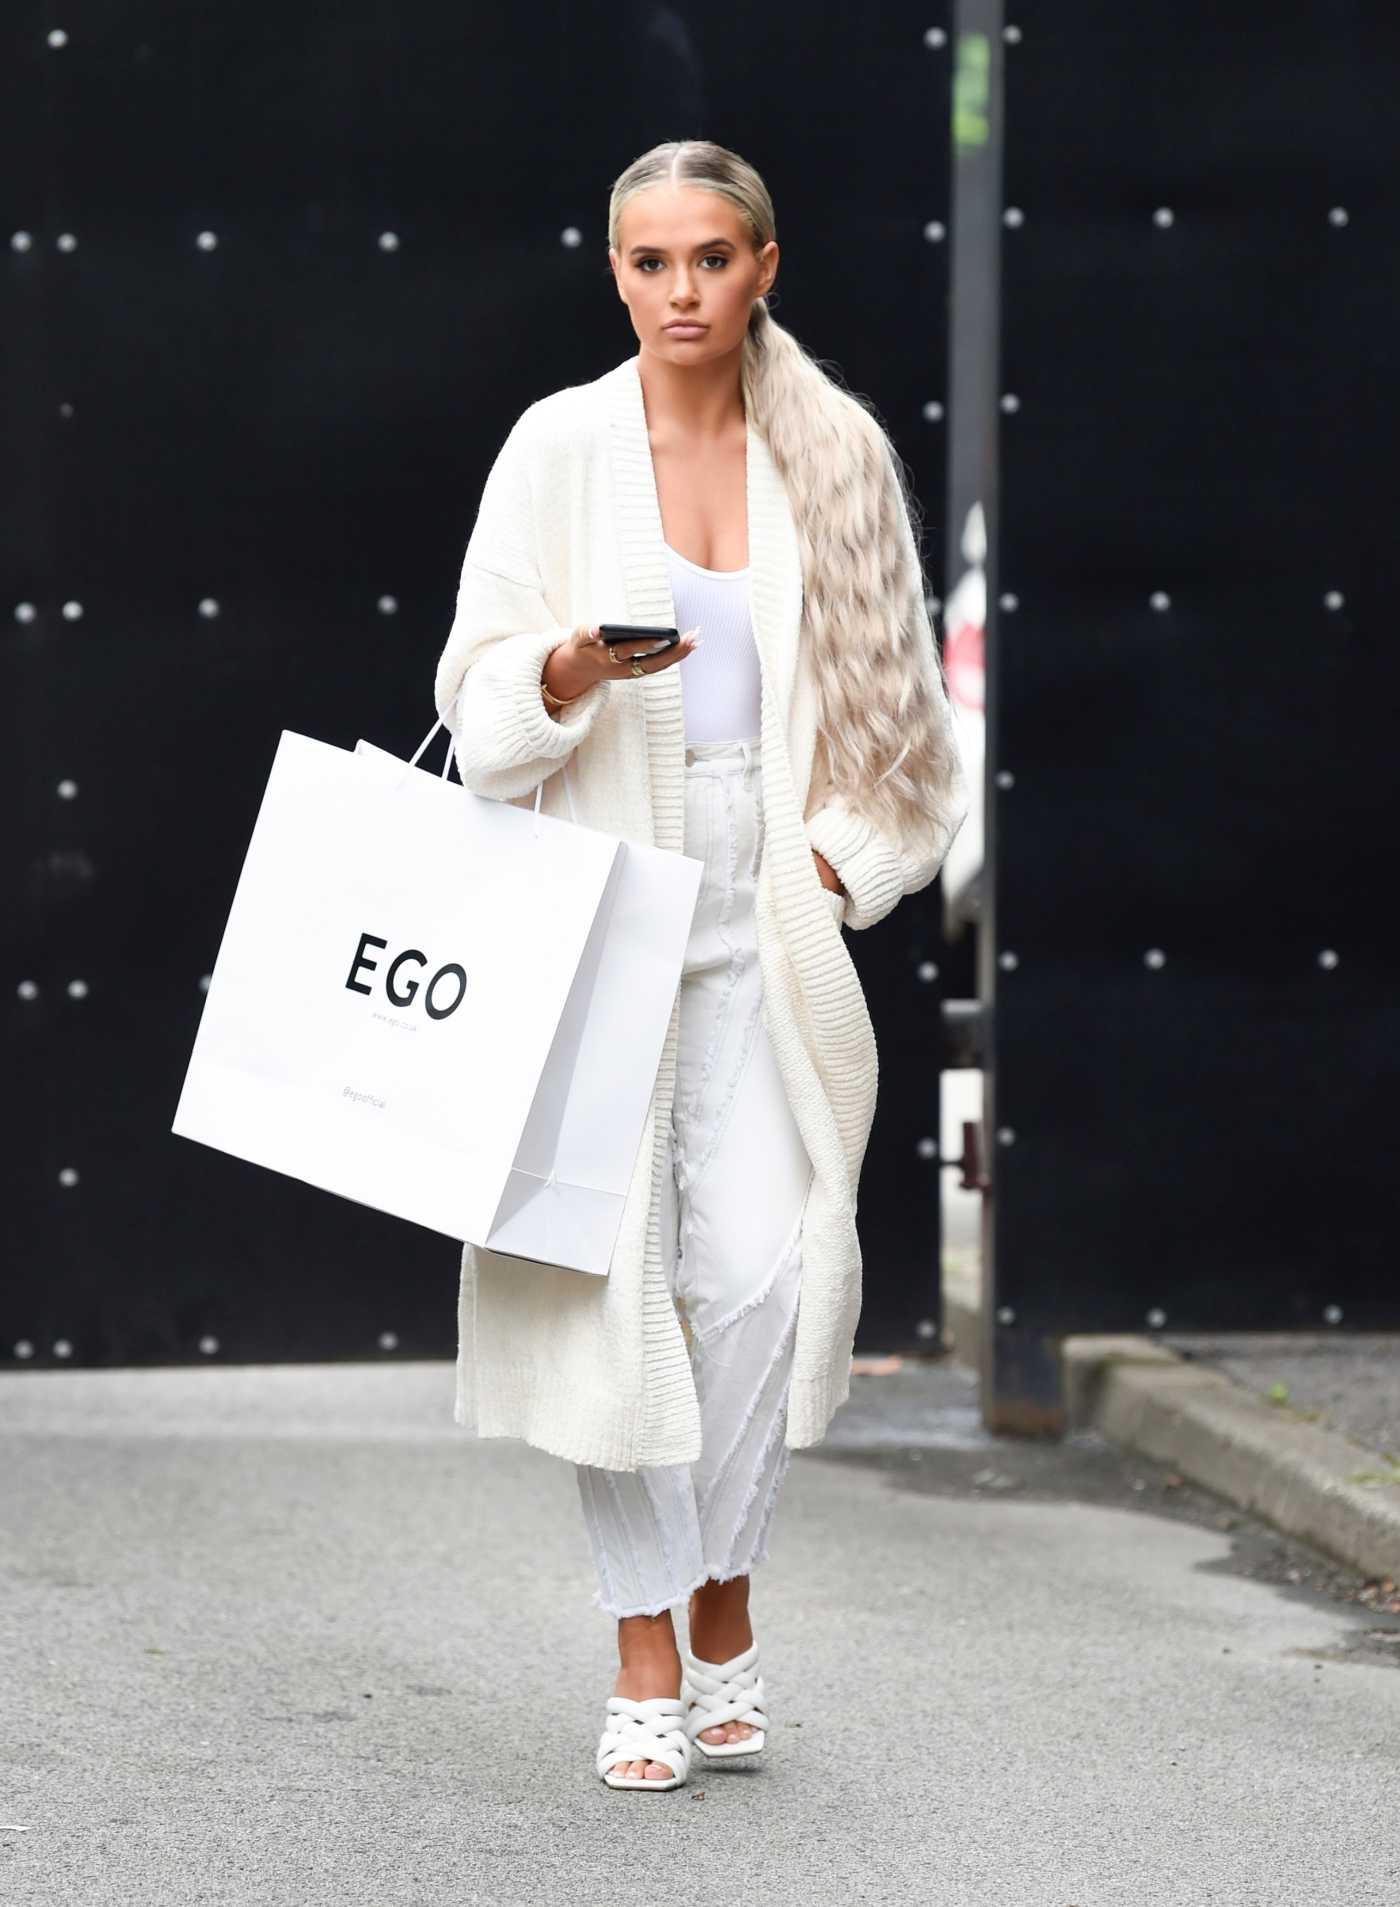 Molly-Mae Hague in a White Cardigan Was Seen Out in Manchester 07/16/2020